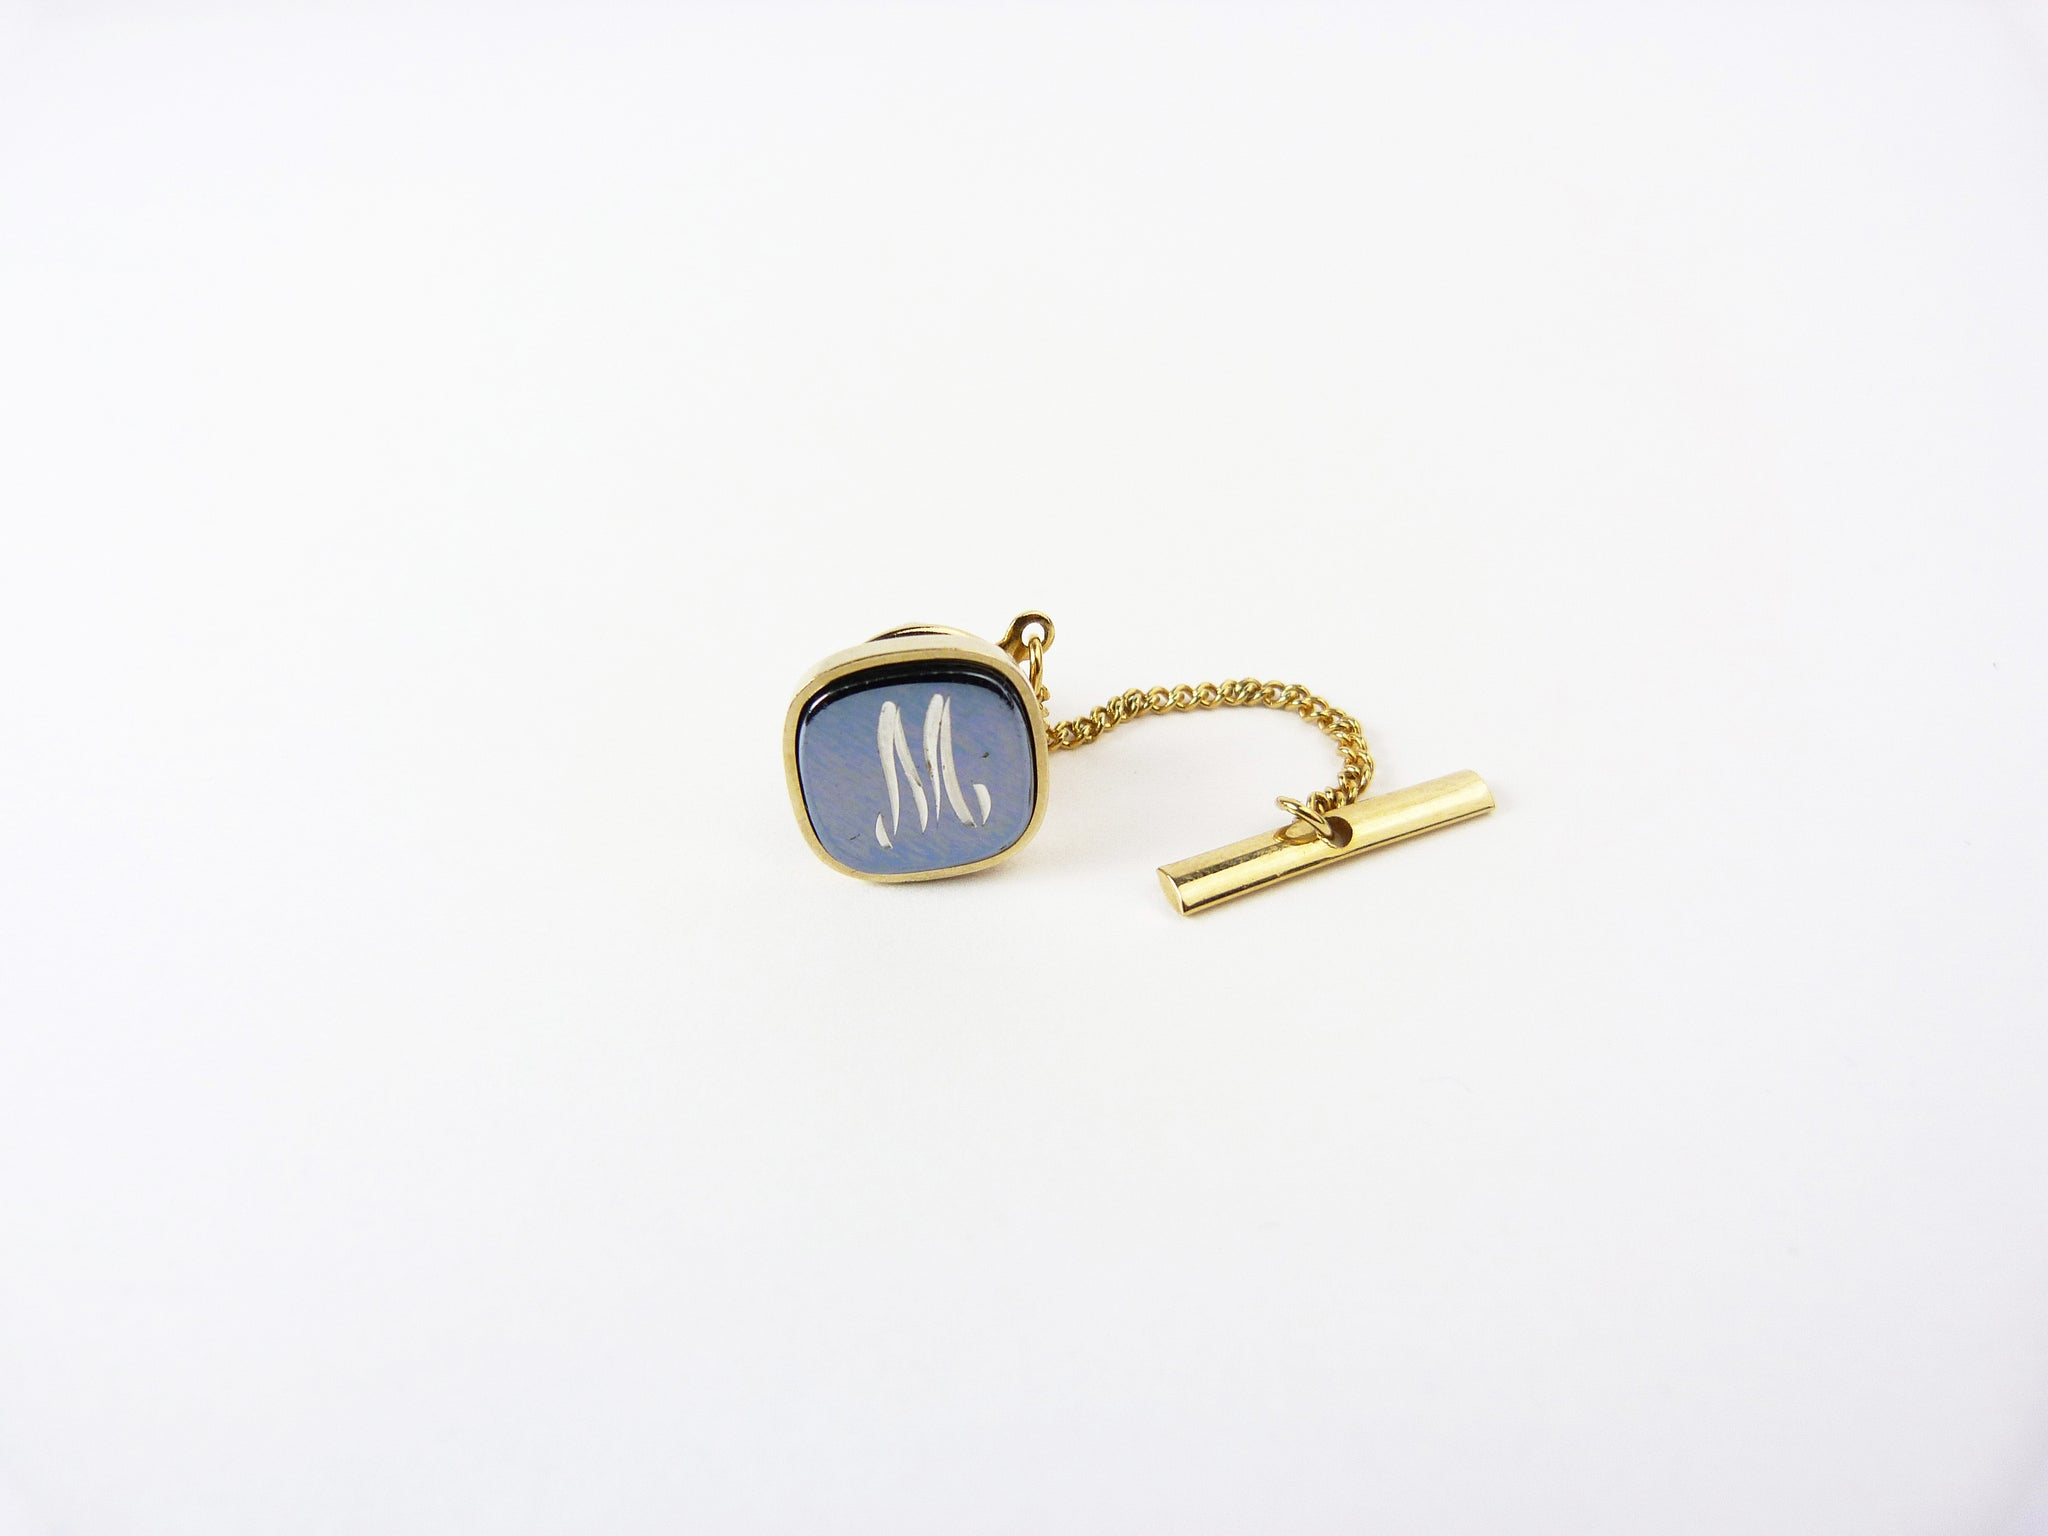 Vintage Hematite Tie Tack Letter Initial M Tie Pin Letter M